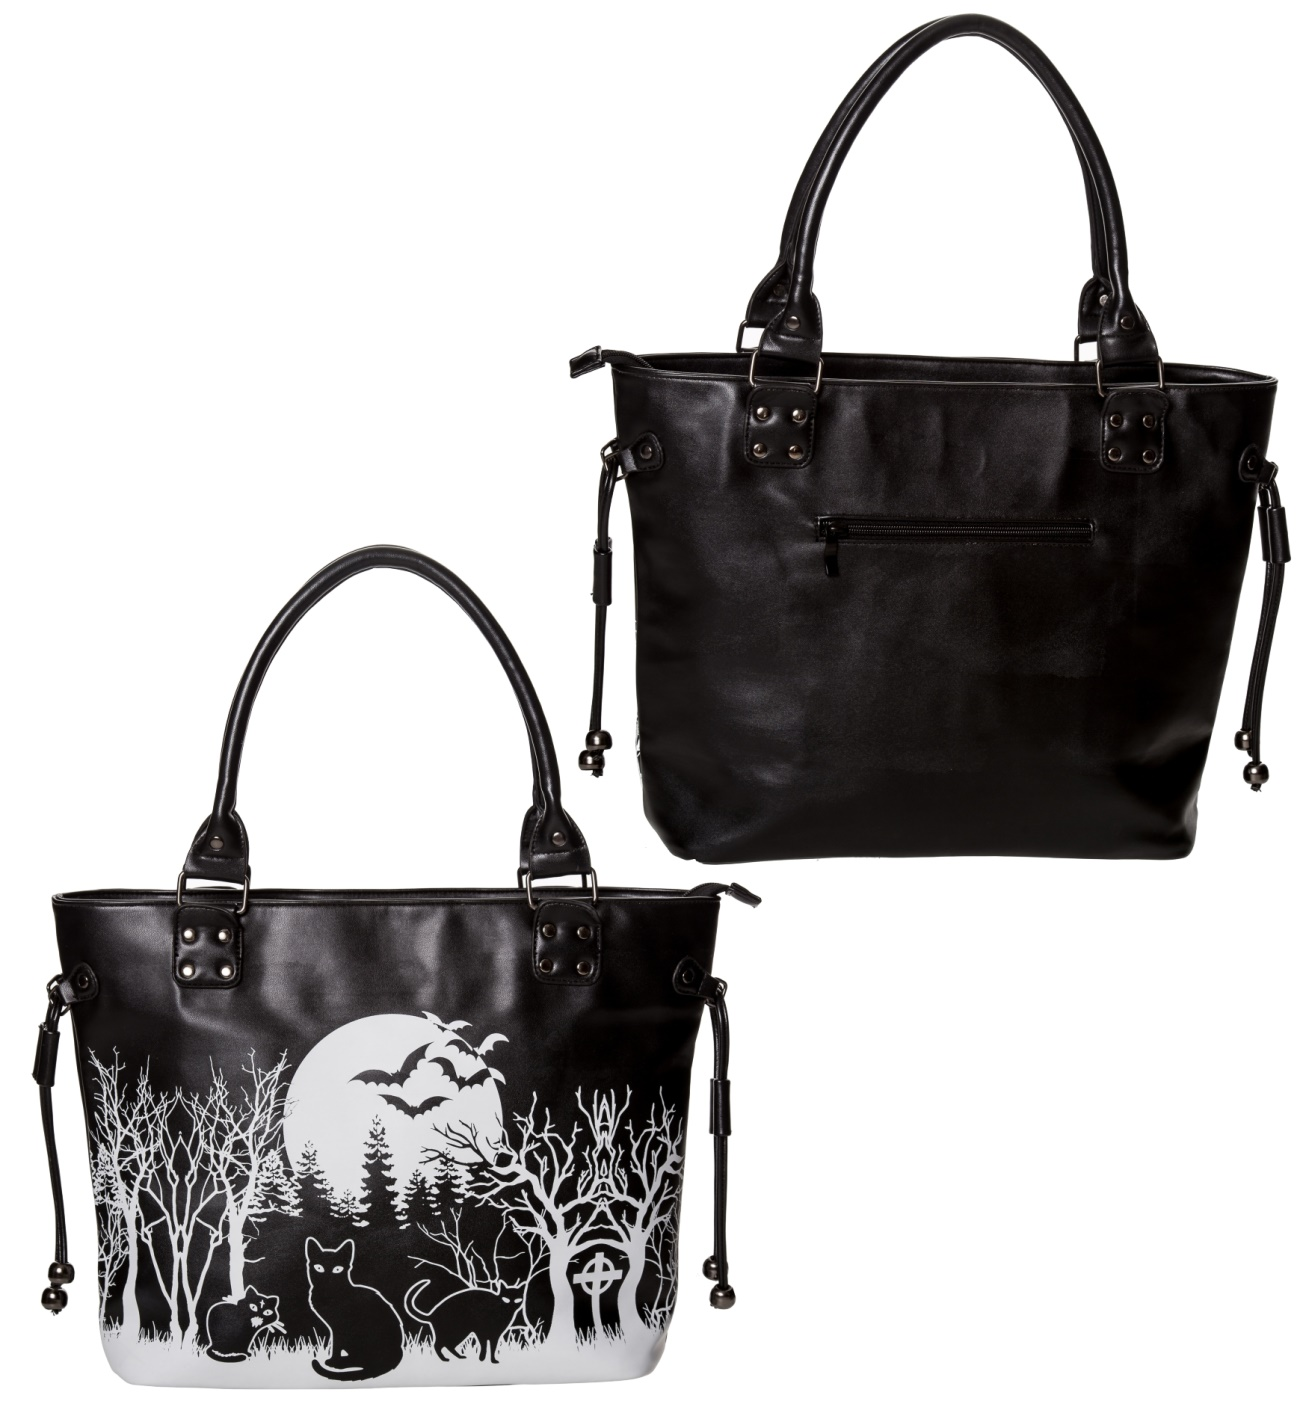 3e2a151bcc5d8 Abendtasche Eleanor 20iger Jahre Banned - Banned Taschen - Army Shop ...